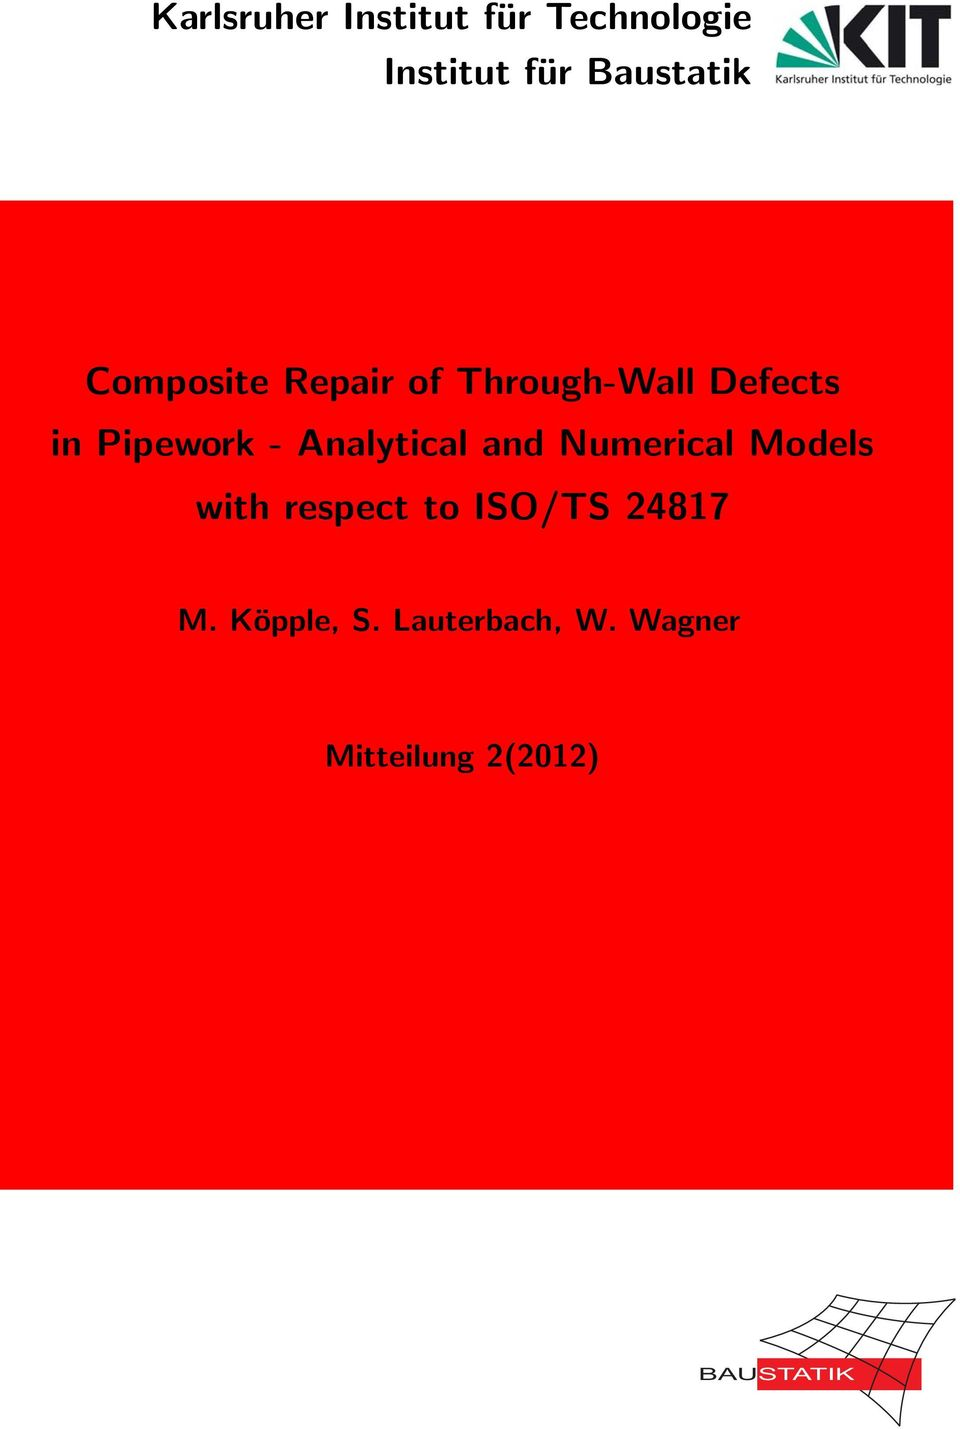 Analytical and Numerical Models with respect to ISO/TS